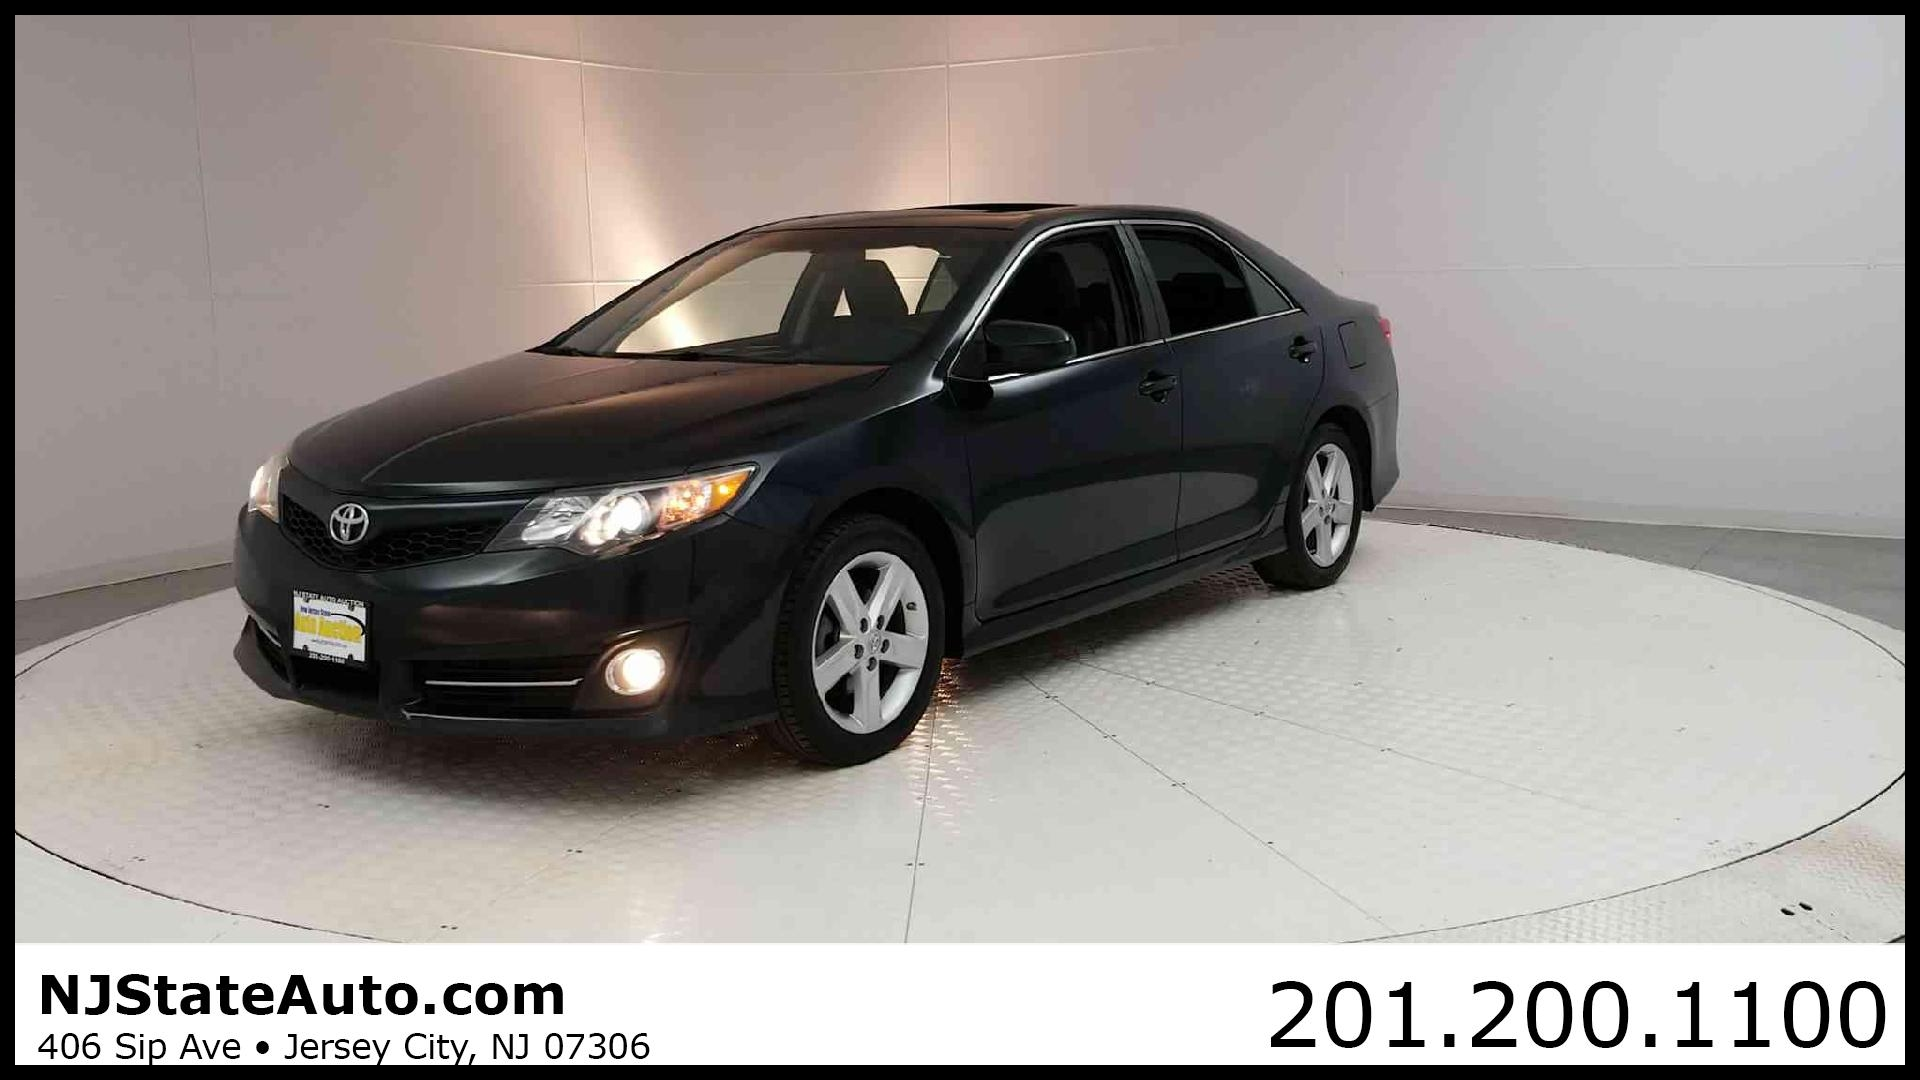 2013 Used Toyota Camry 4dr Sedan I4 Automatic SE at New Jersey State Auto Auction Serving Jersey City NJ IID